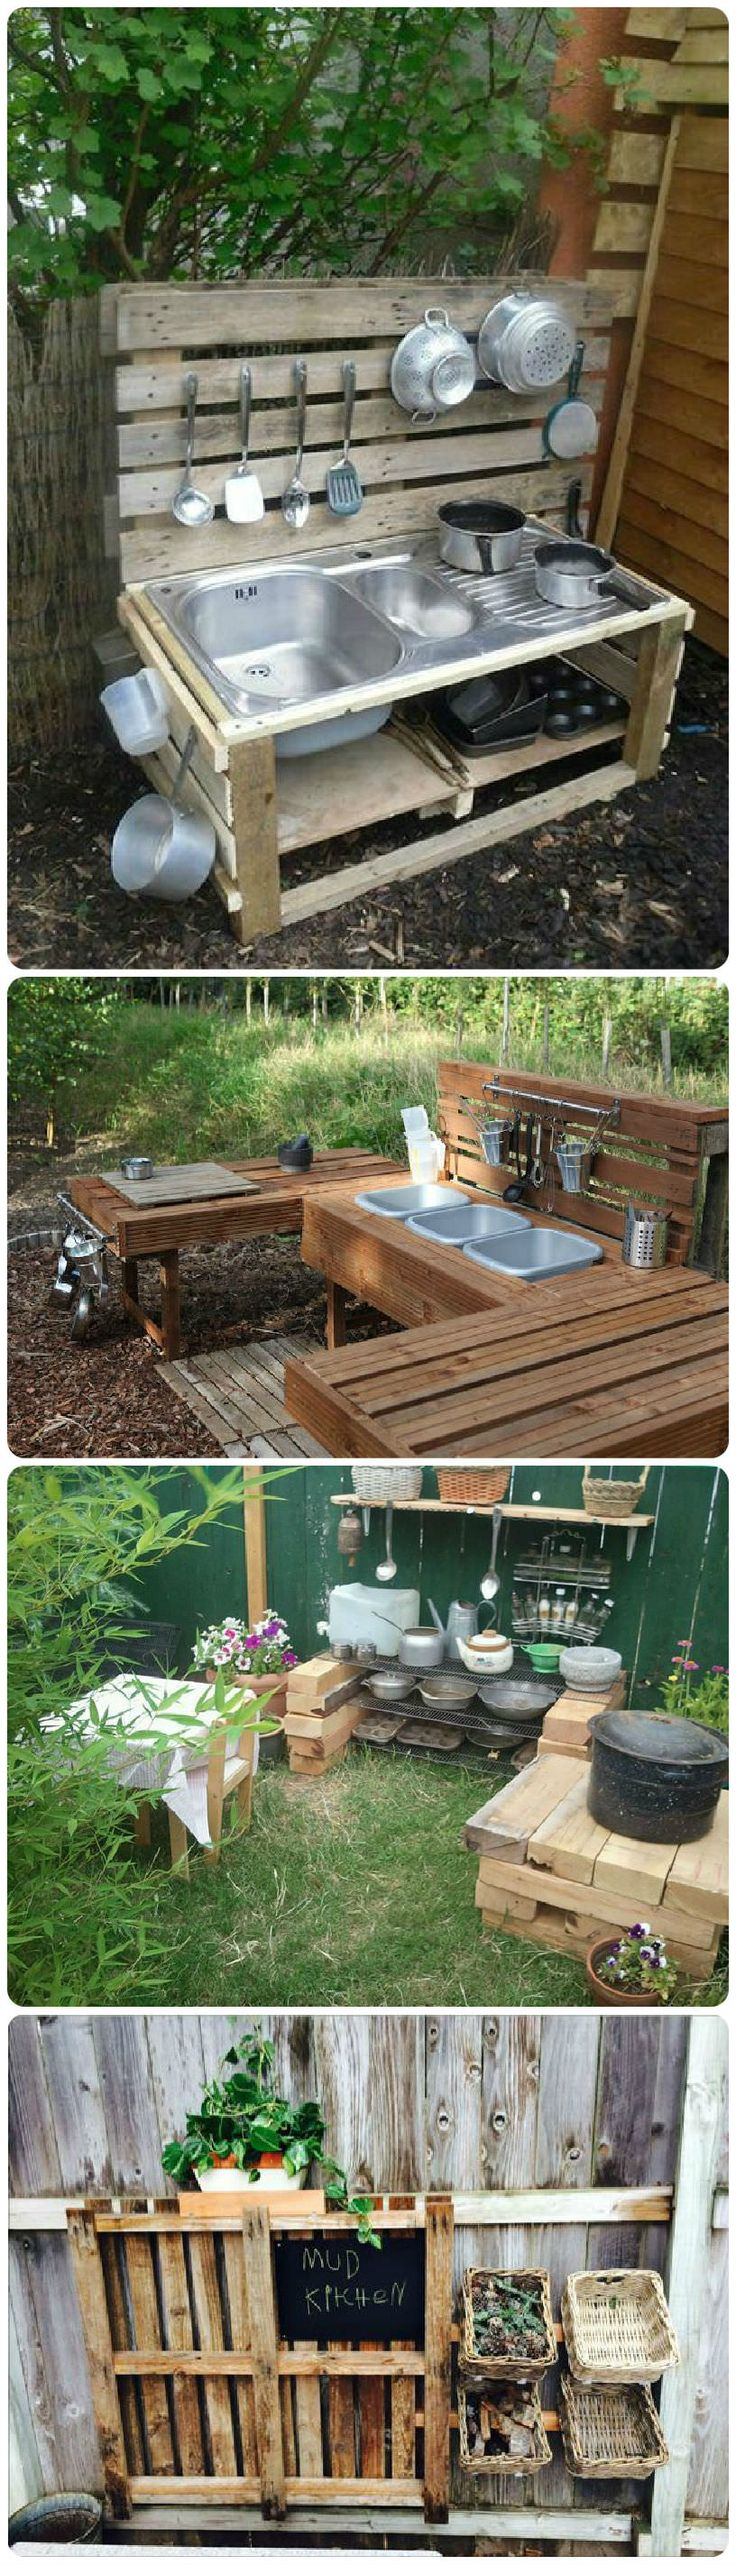 Mud kitchen ideas